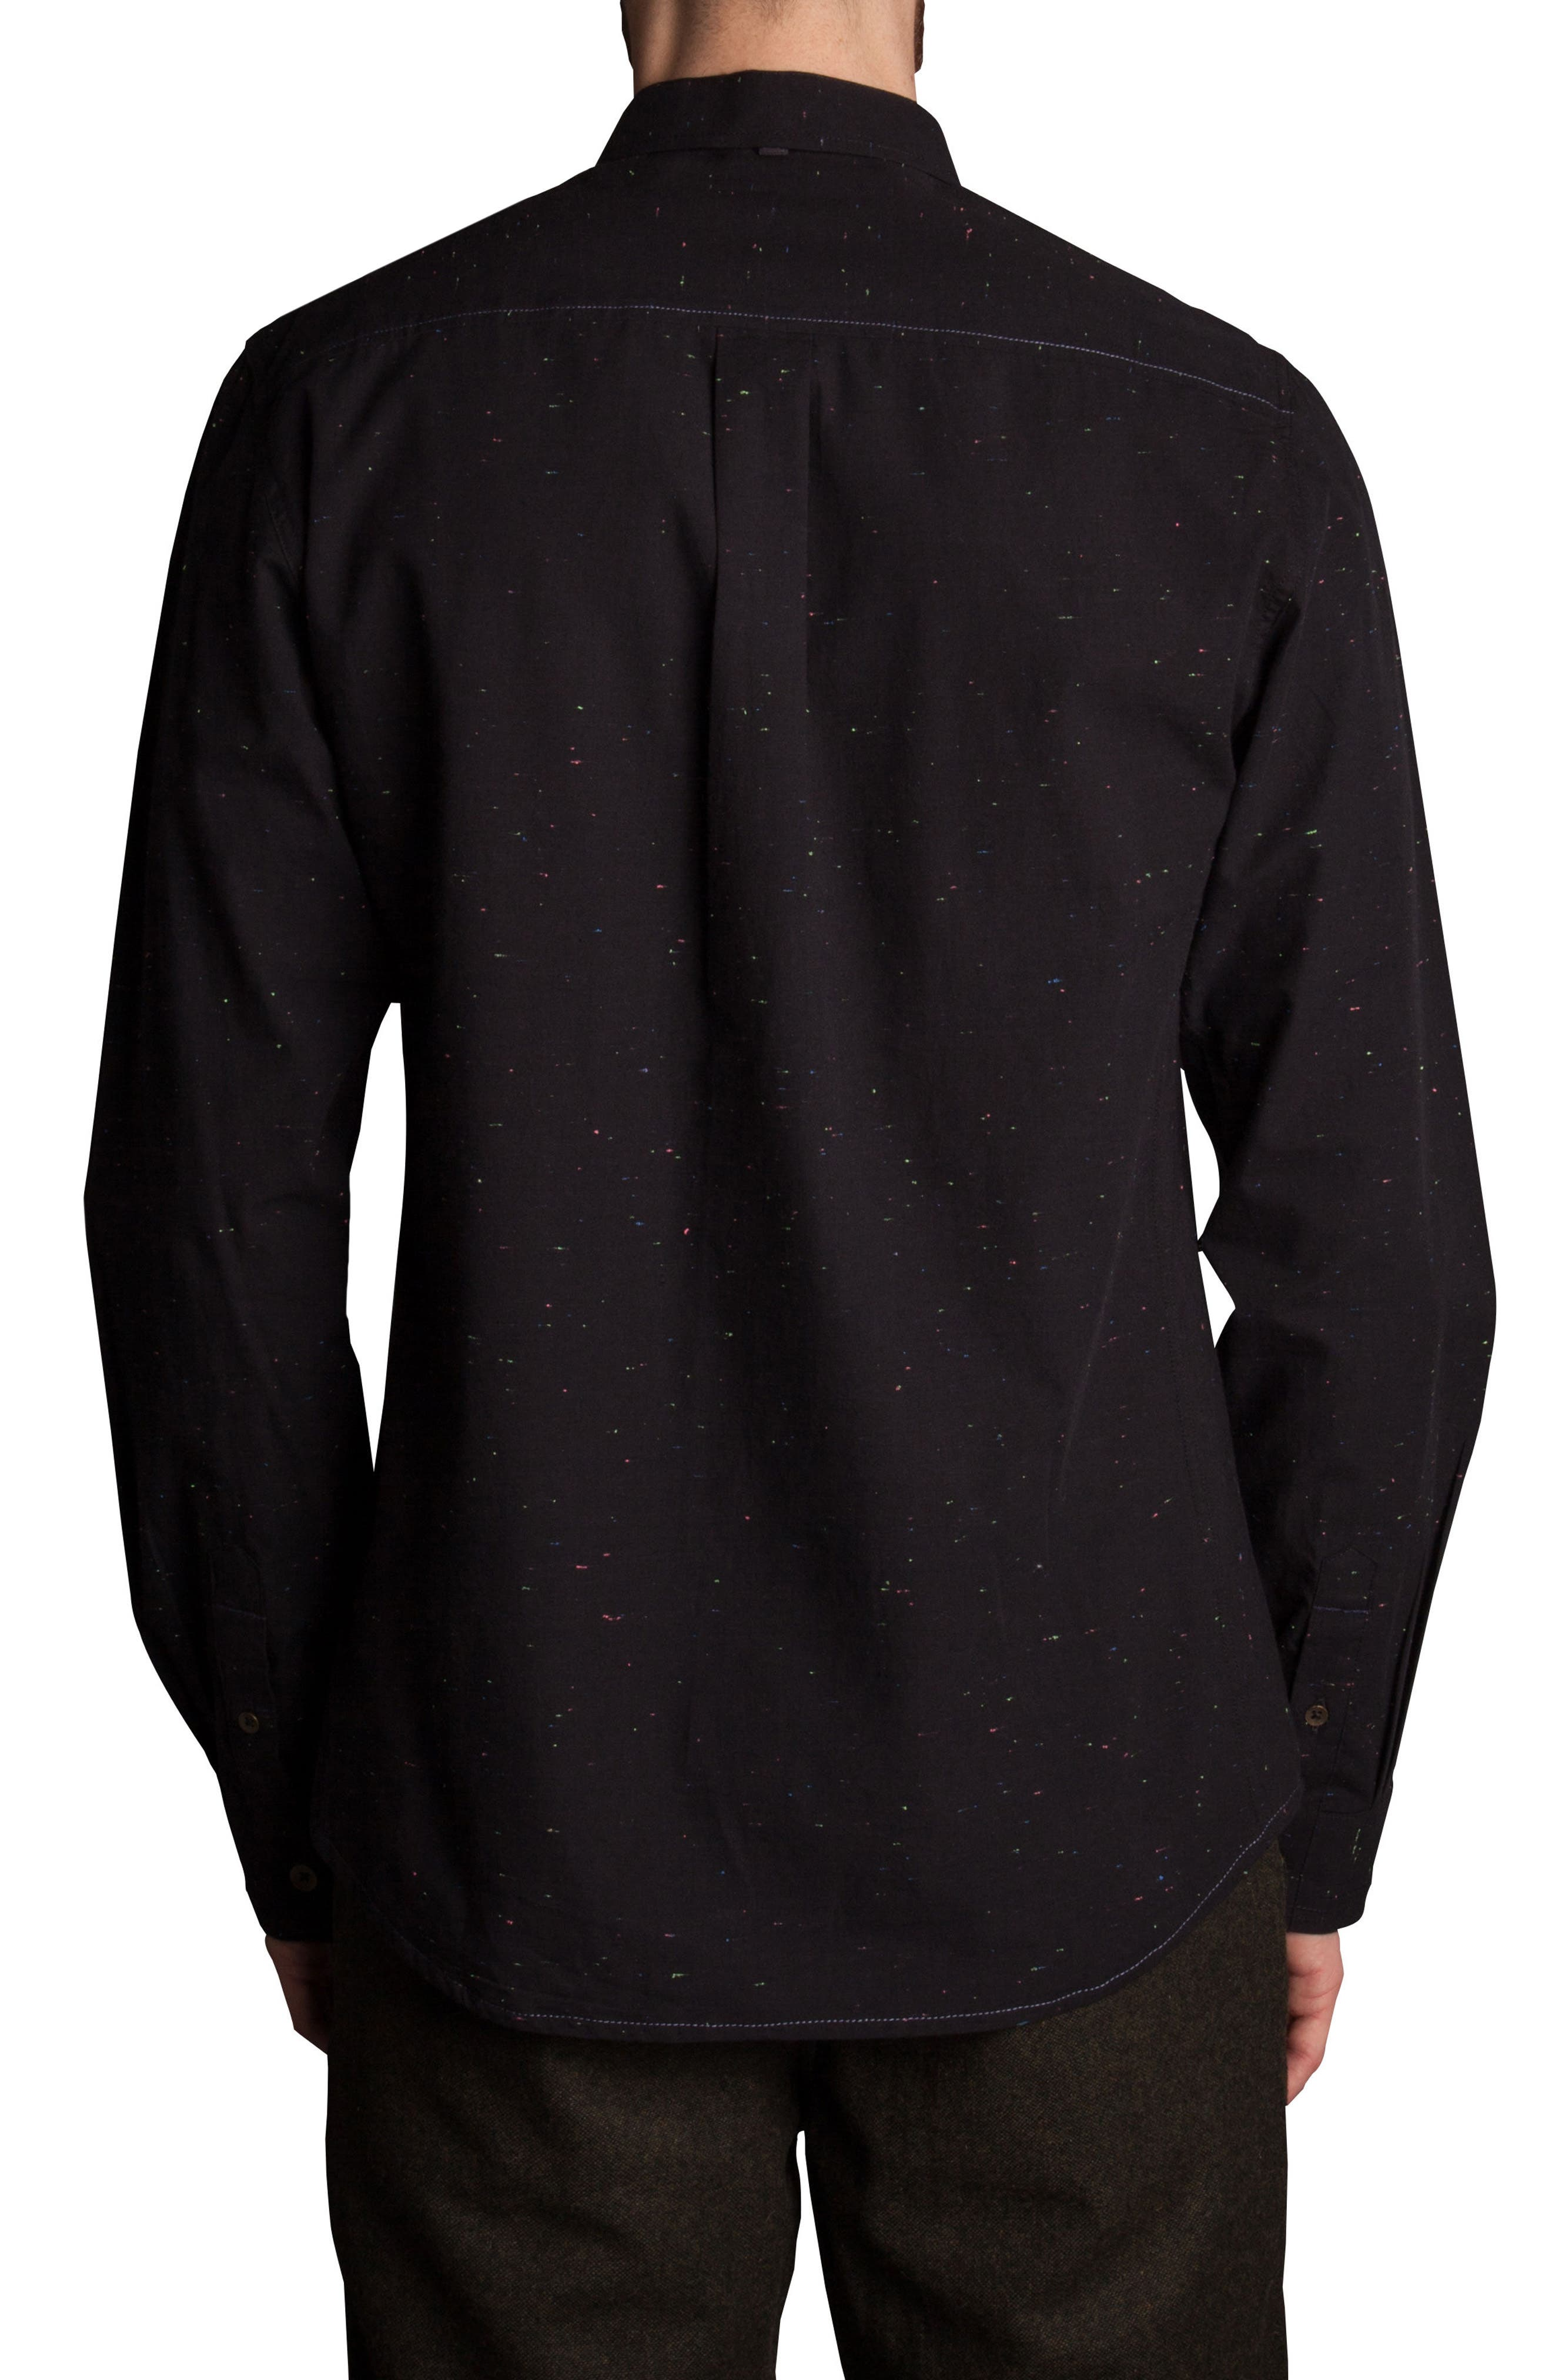 Base Speck Sport Shirt,                             Alternate thumbnail 2, color,                             001